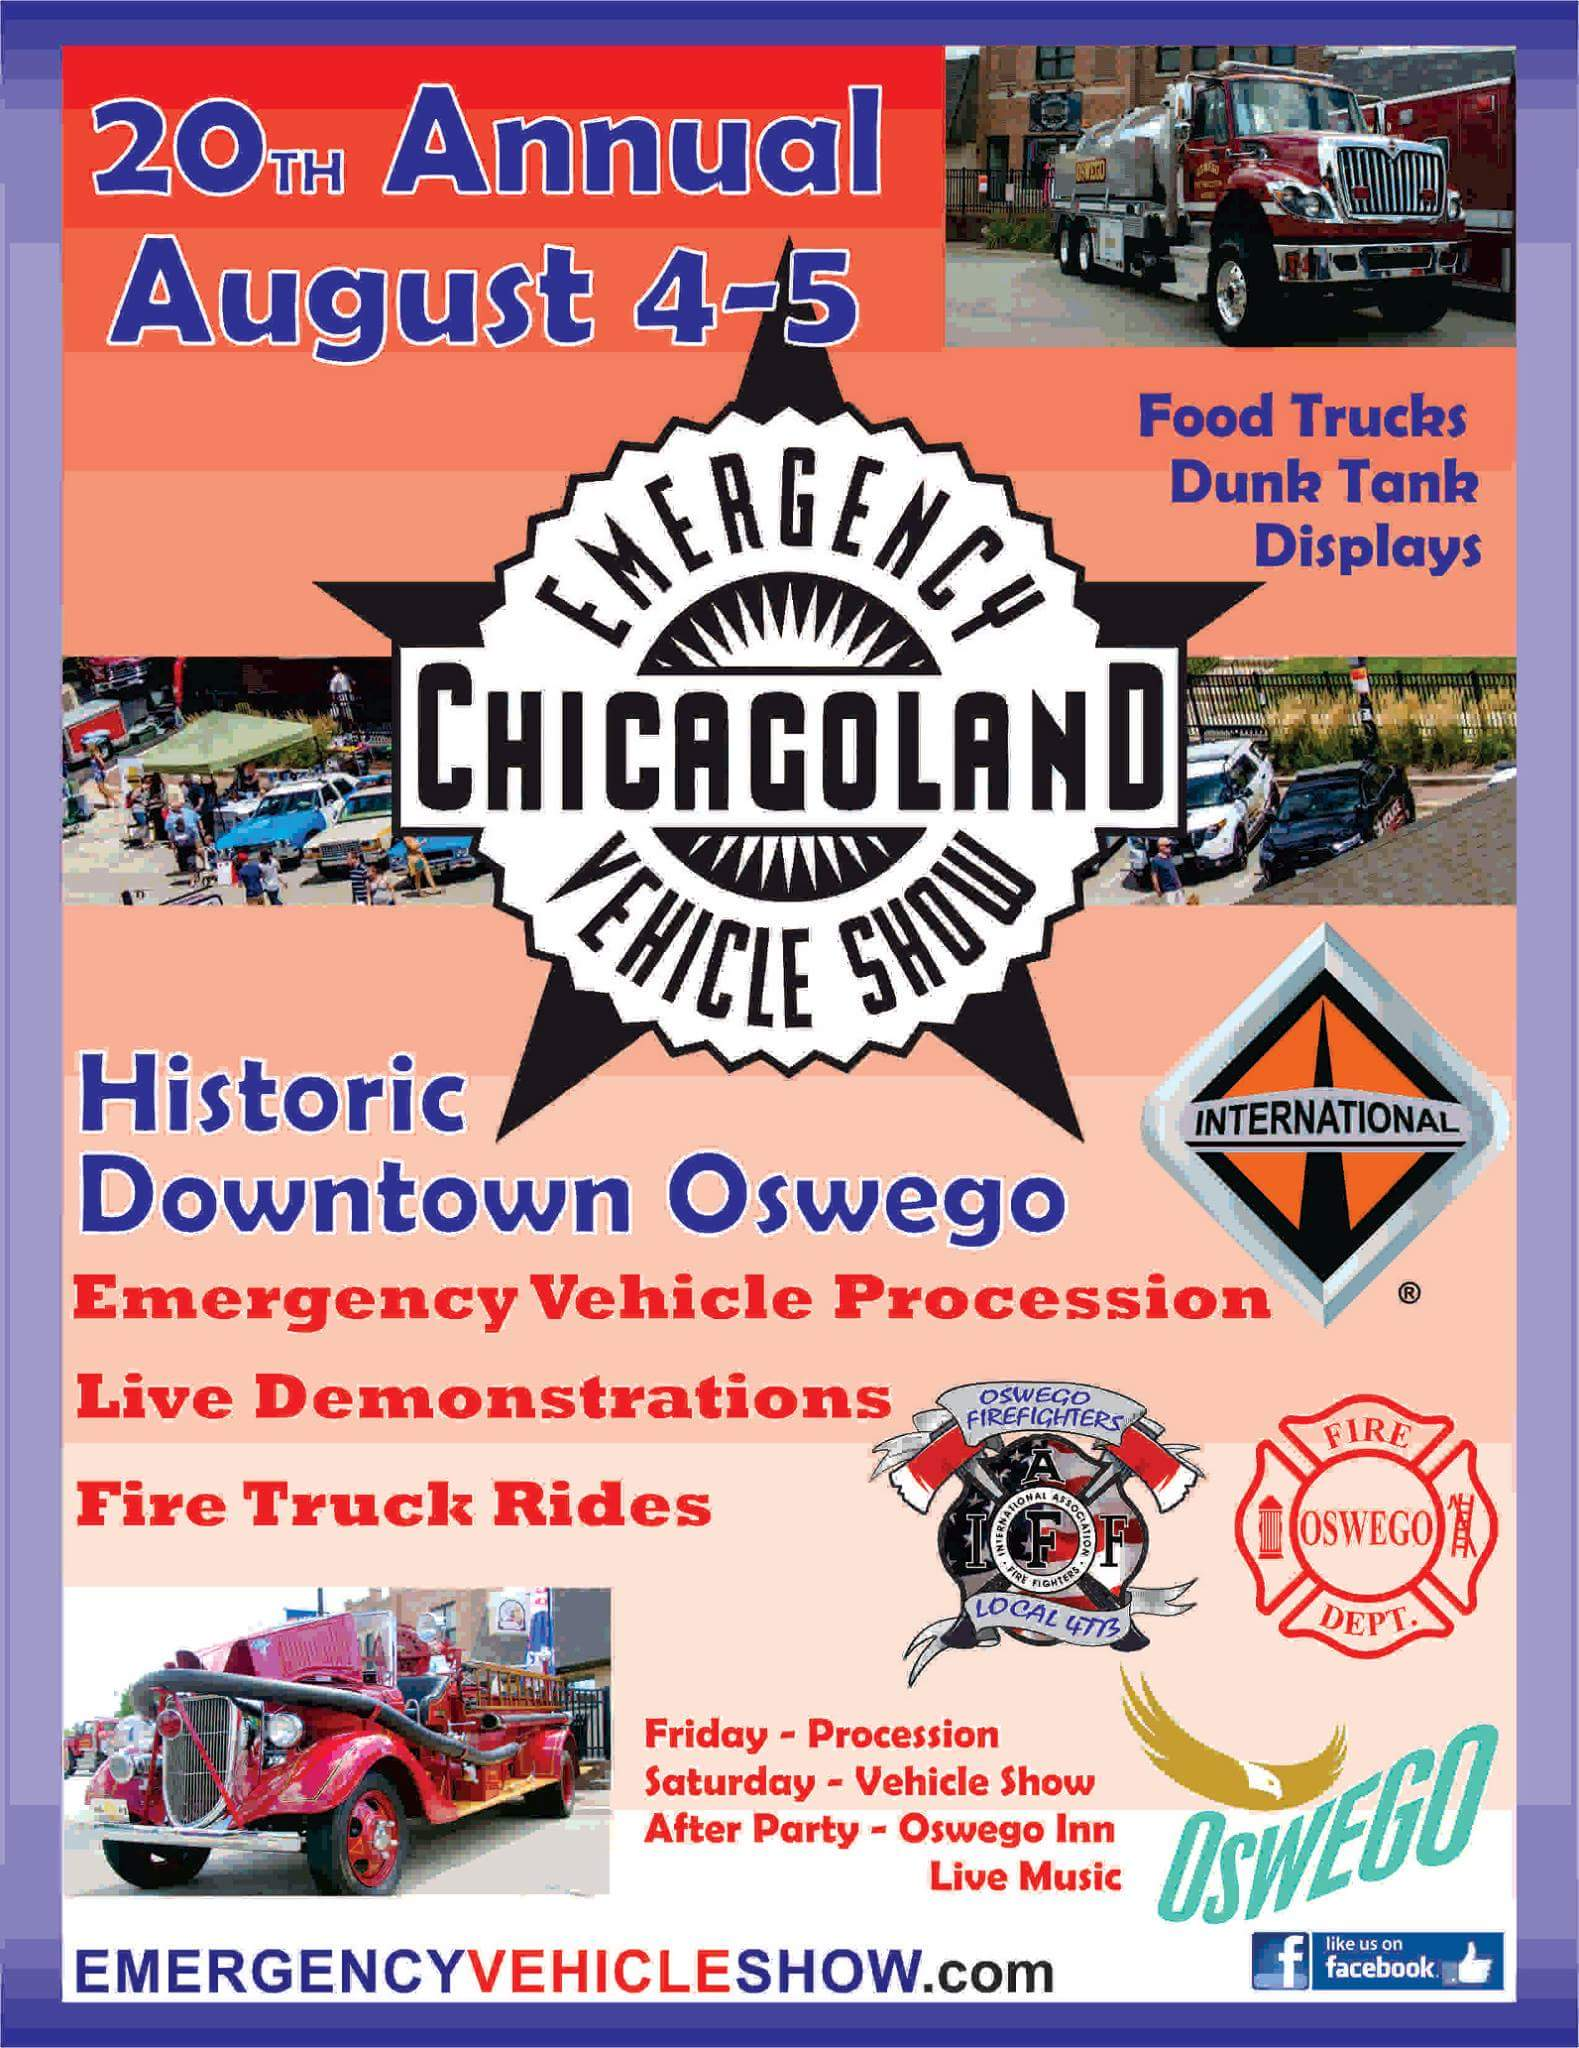 20th Annual Chicagoland Emergency Vehicle Show